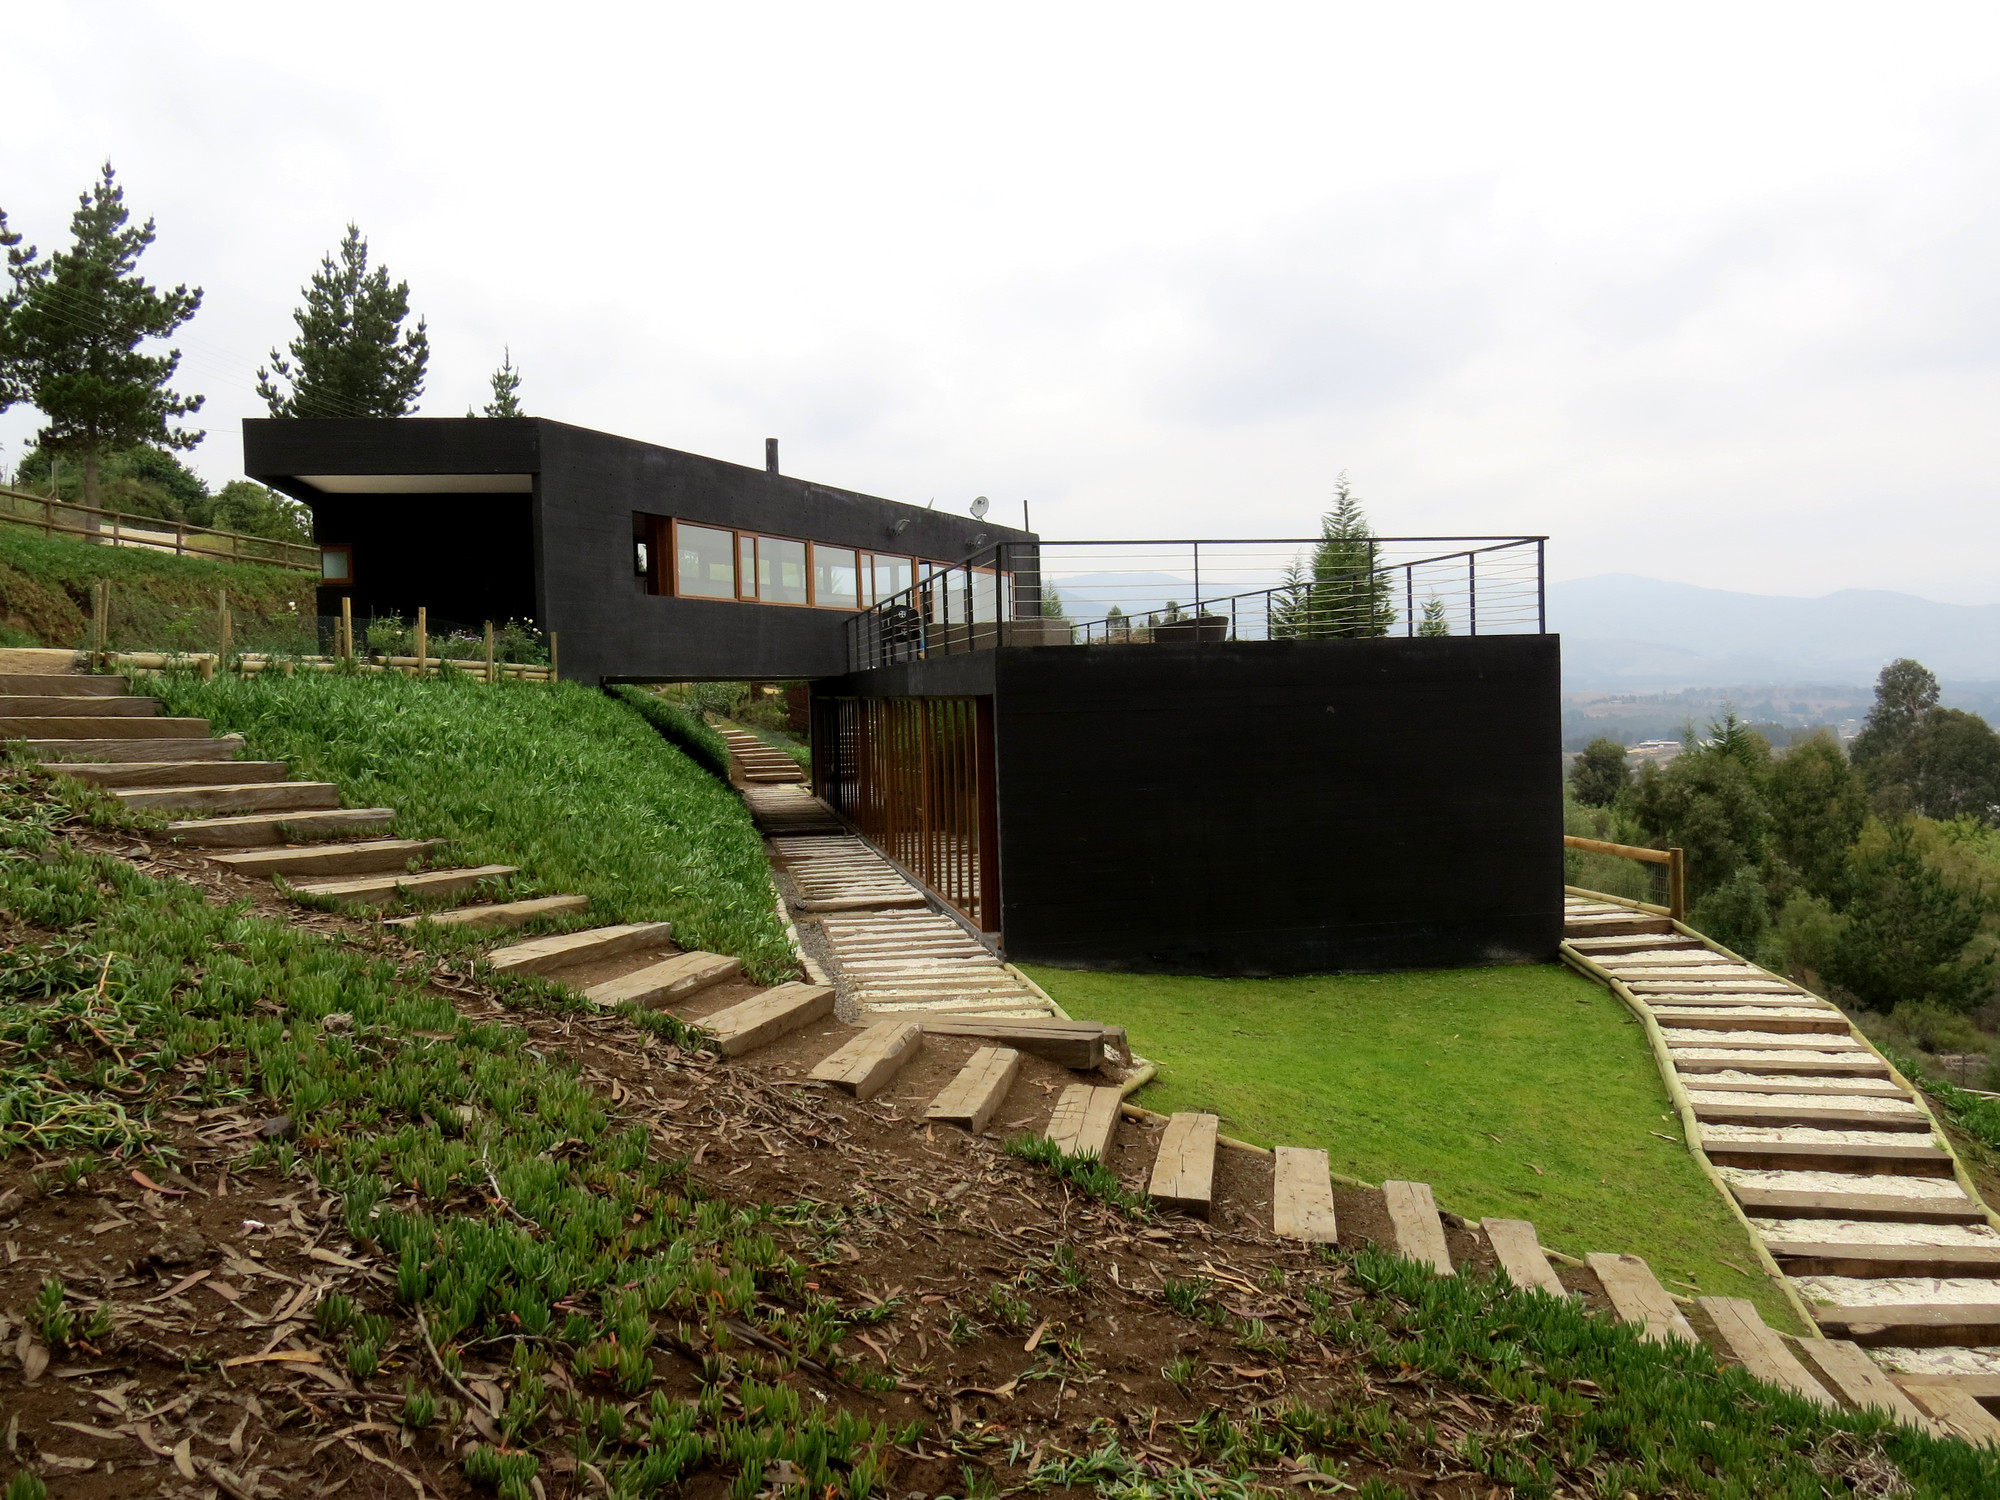 House in Maitencillo / Patricio Cortese Opazo, Courtesy of Patricio Cortese Opazo